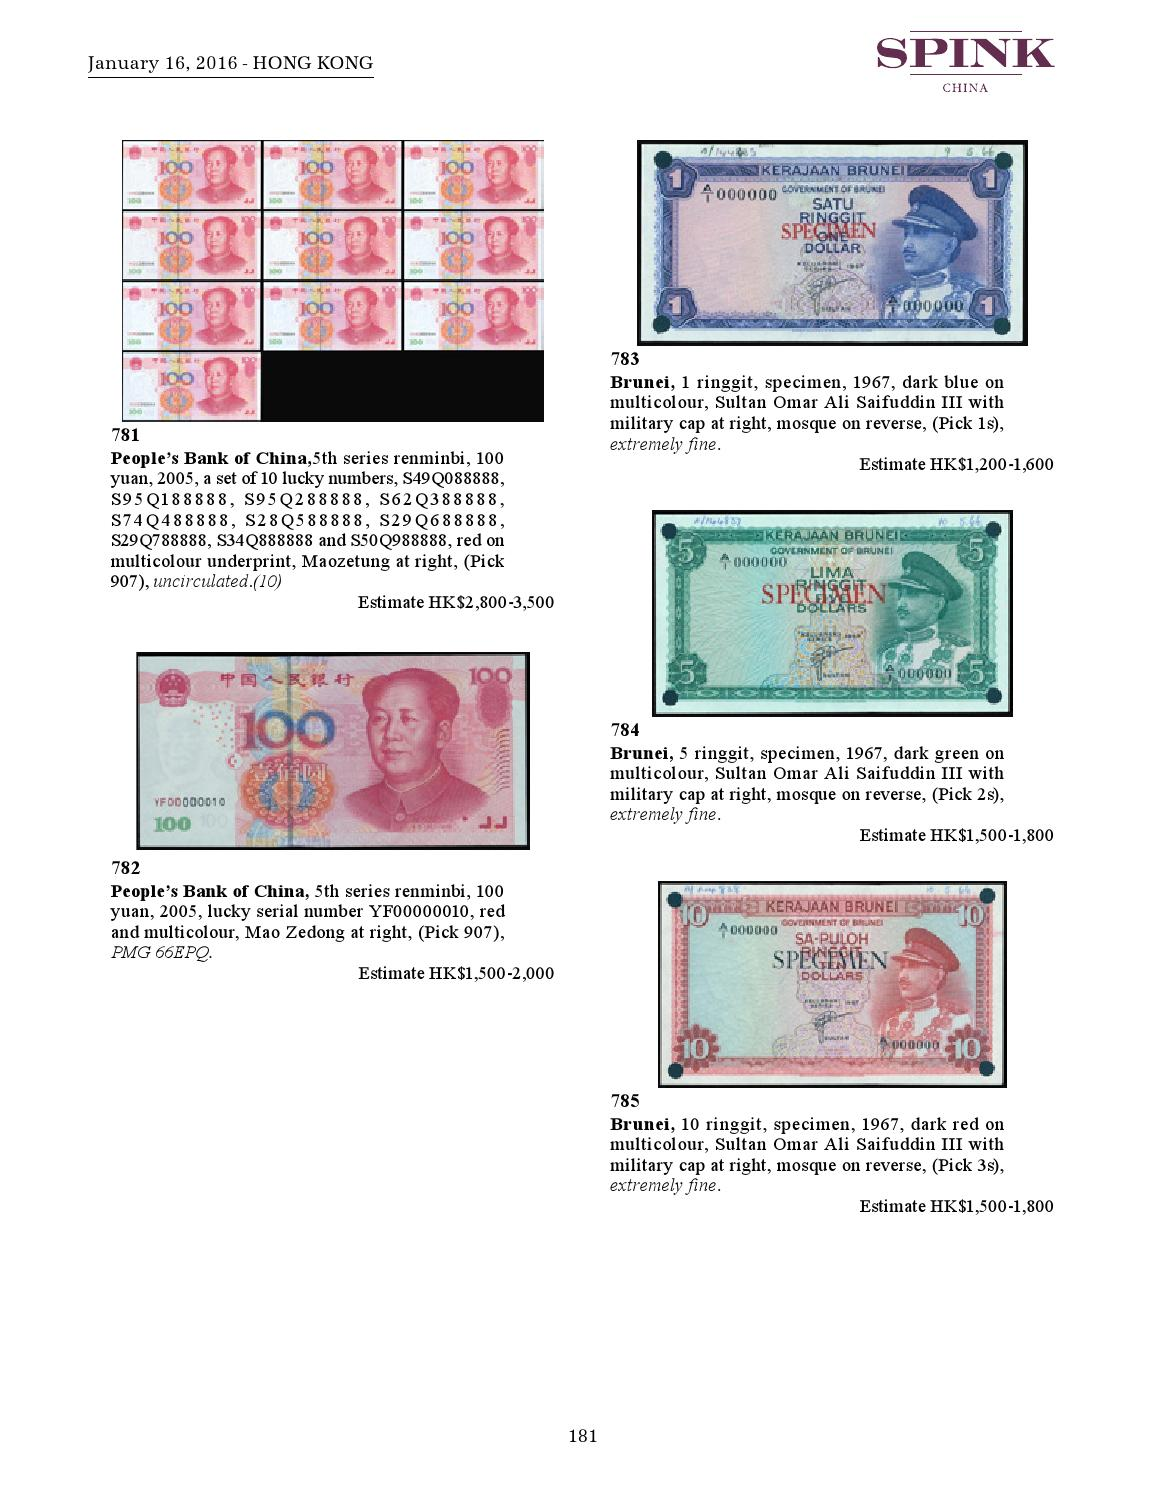 16011 - BANKNOTES, BONDS AND SHARE CERTIFICATES AND COINS OF CHINA